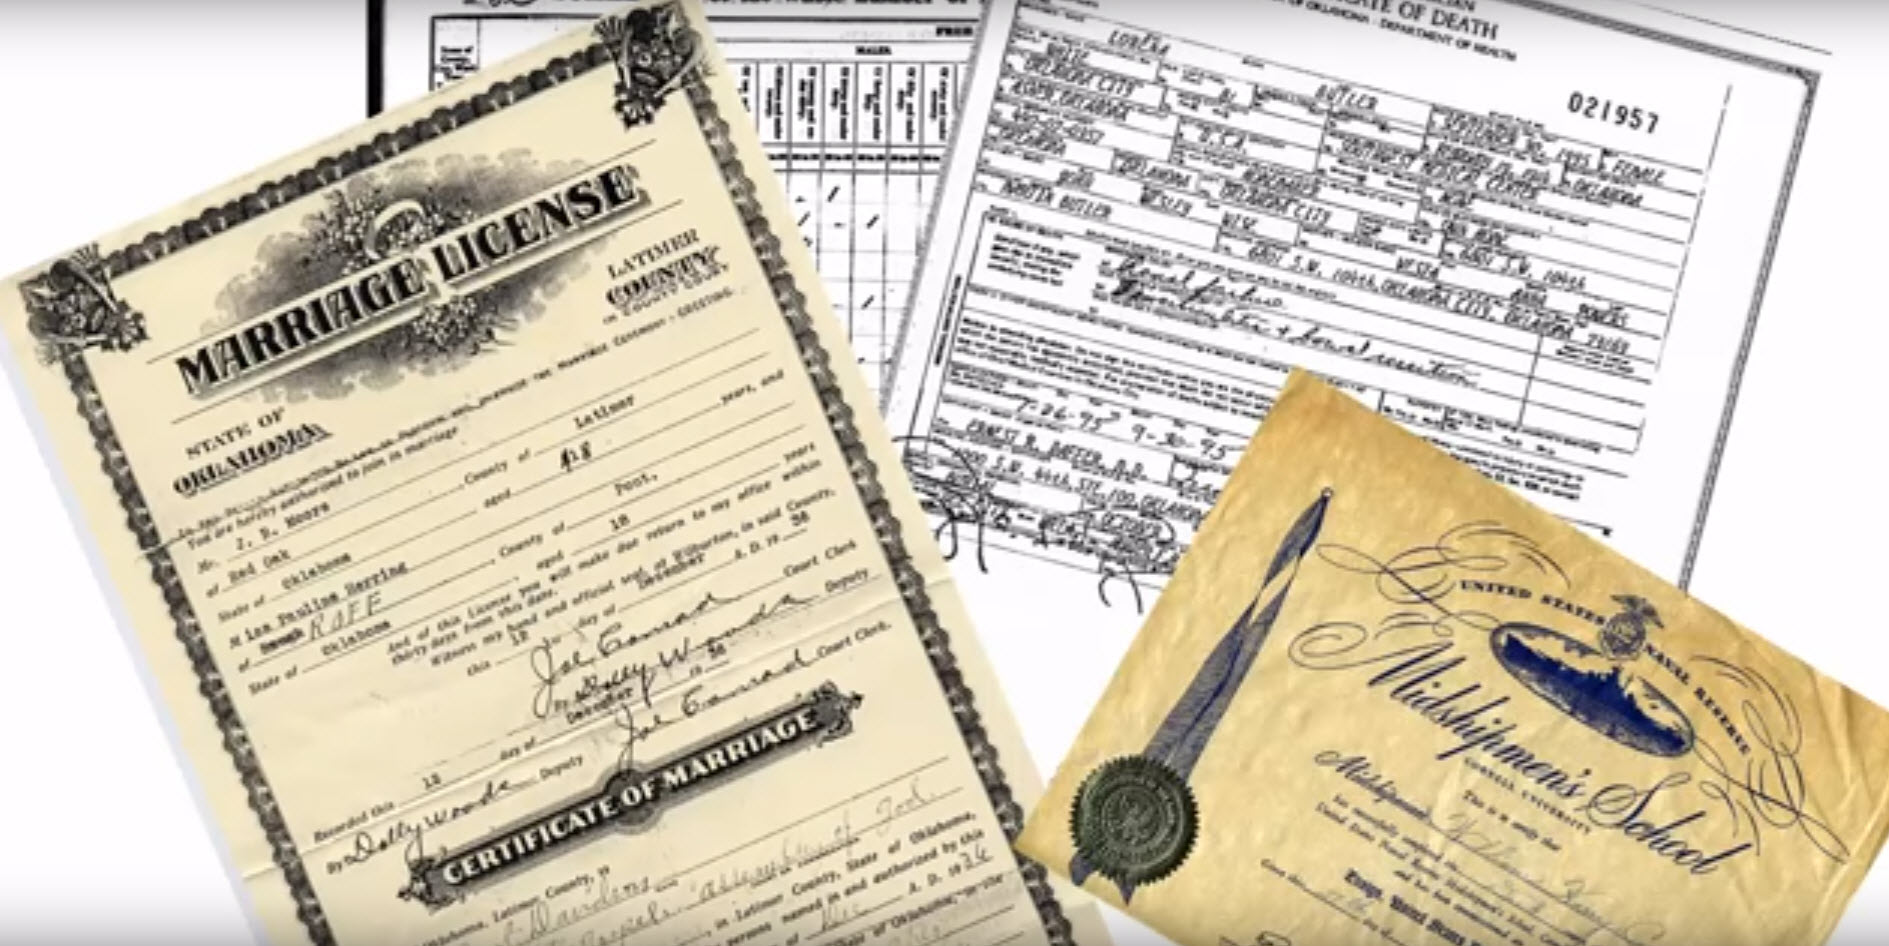 family history video documents applying to lineage societies